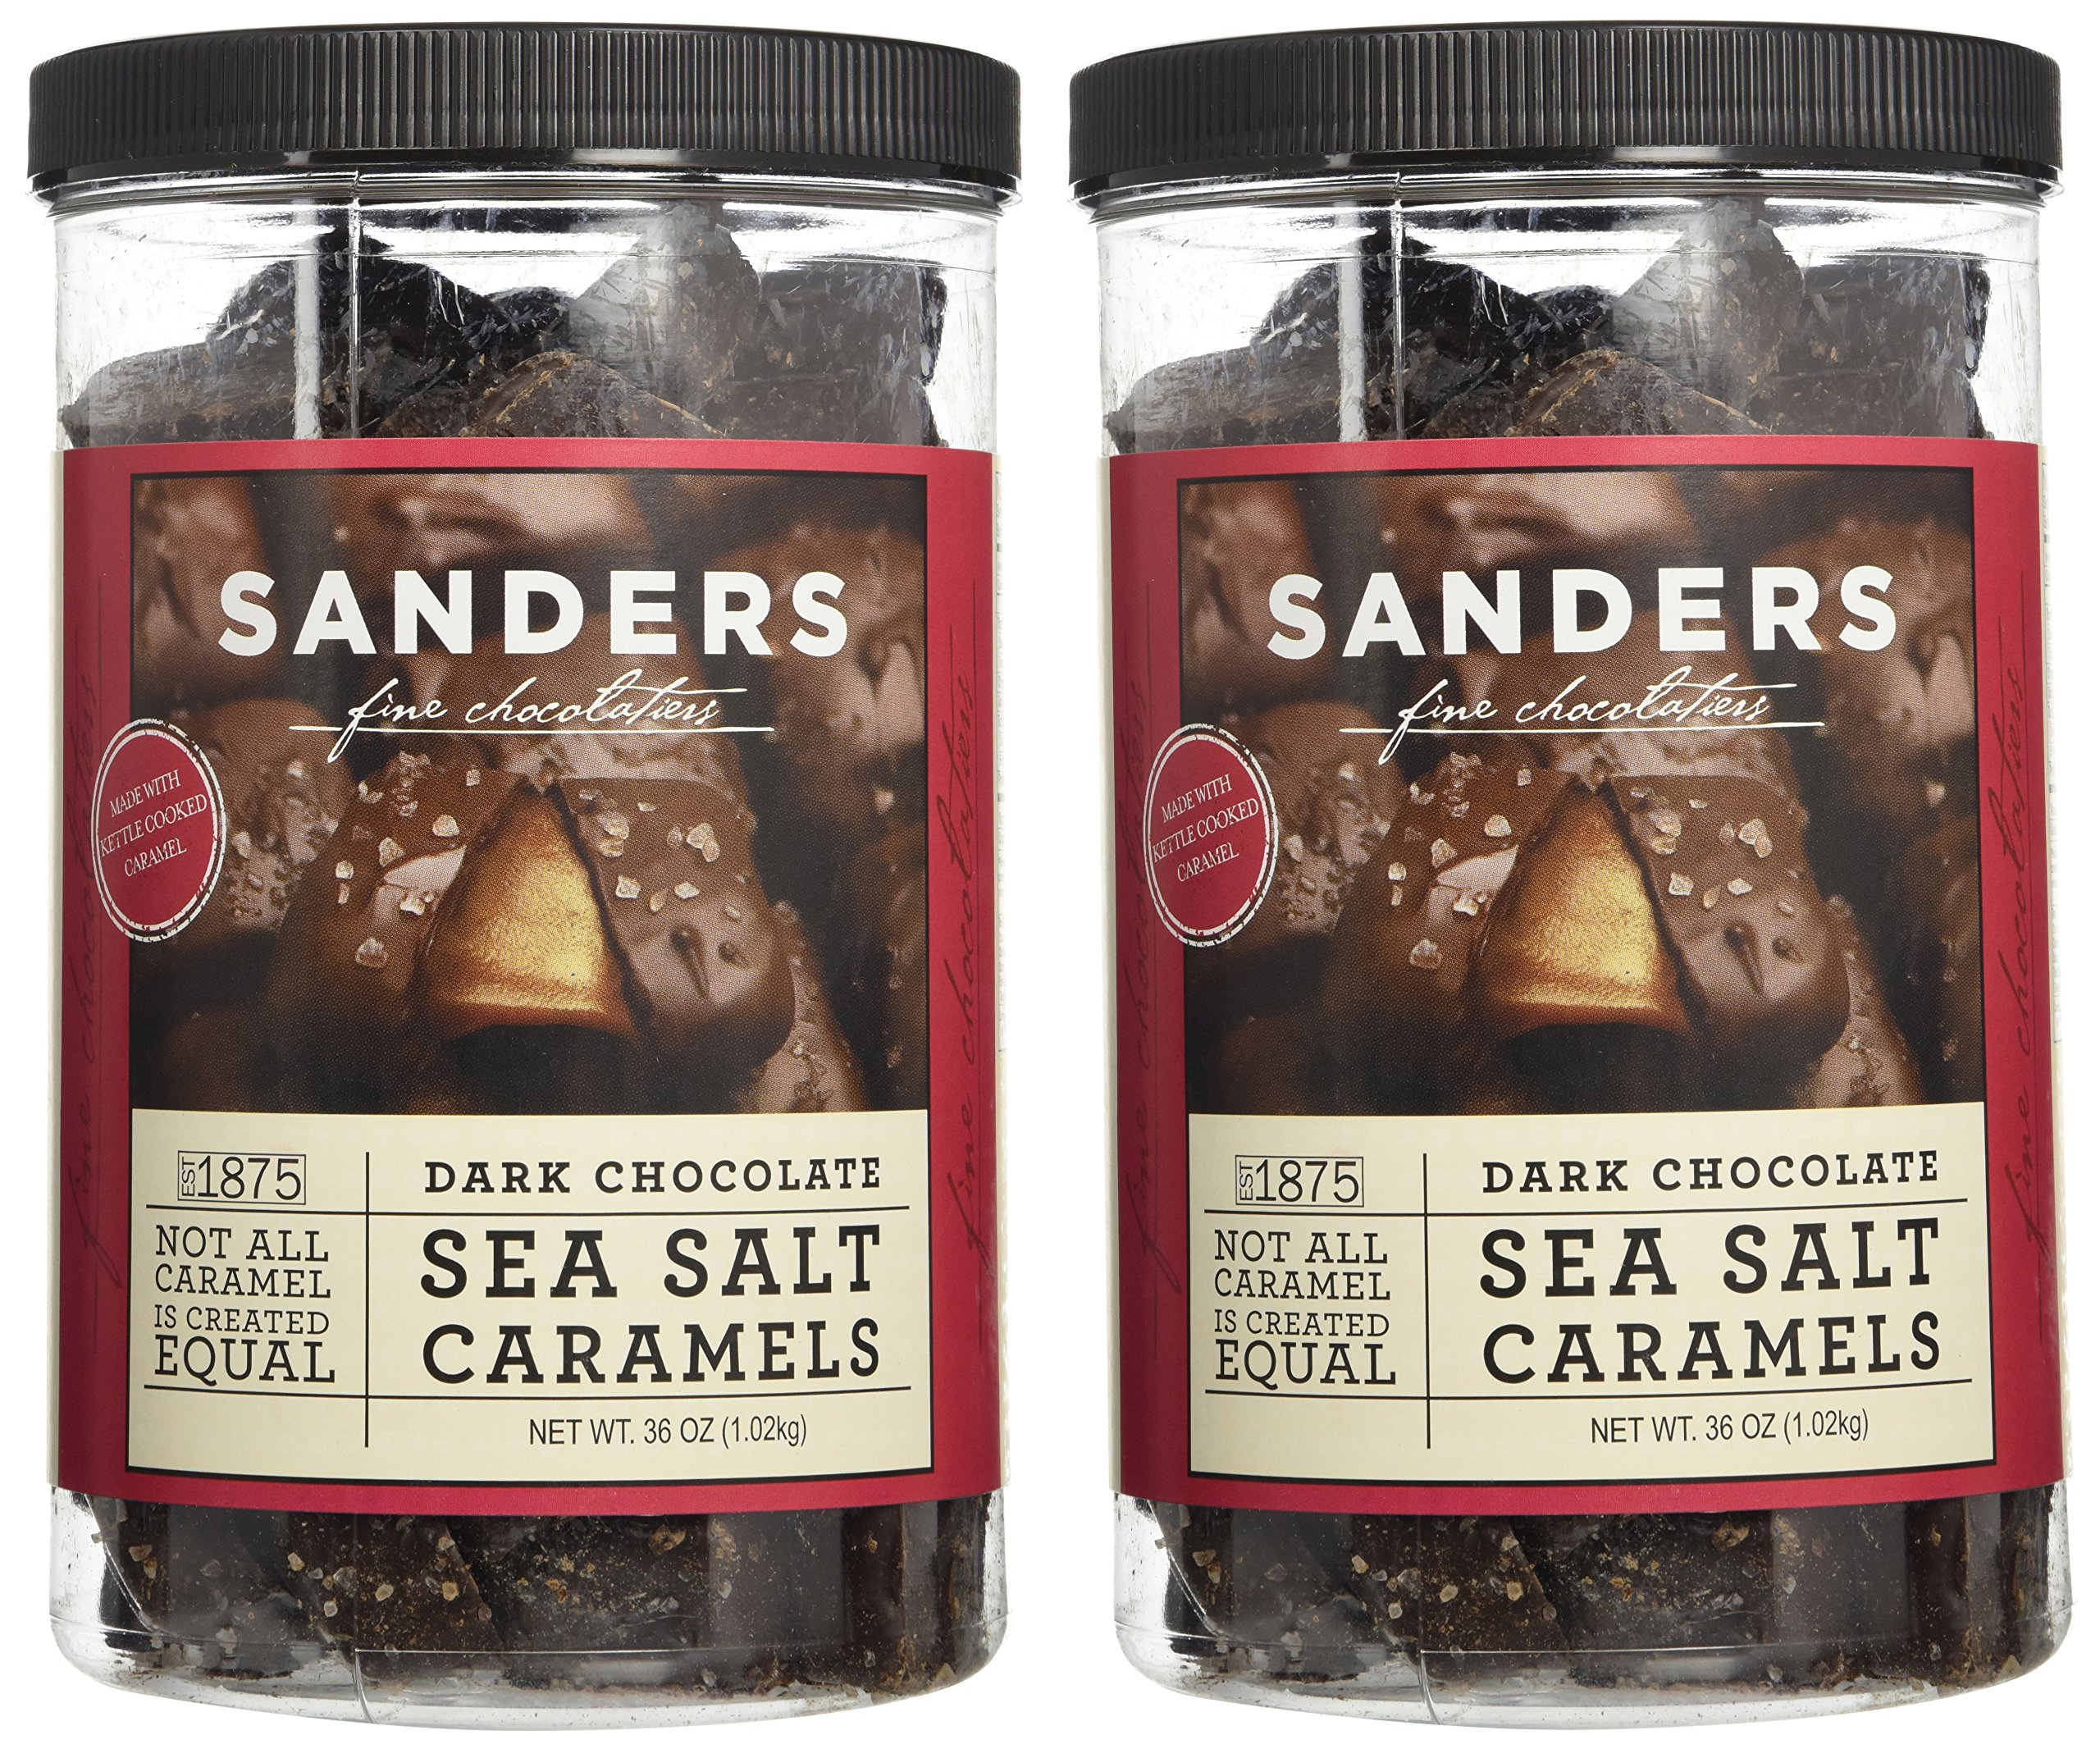 Sanders Dark Chocolate Sea Salt Caramels - 36 Oz (Value 2 Pack) by Sanders (Image #1)